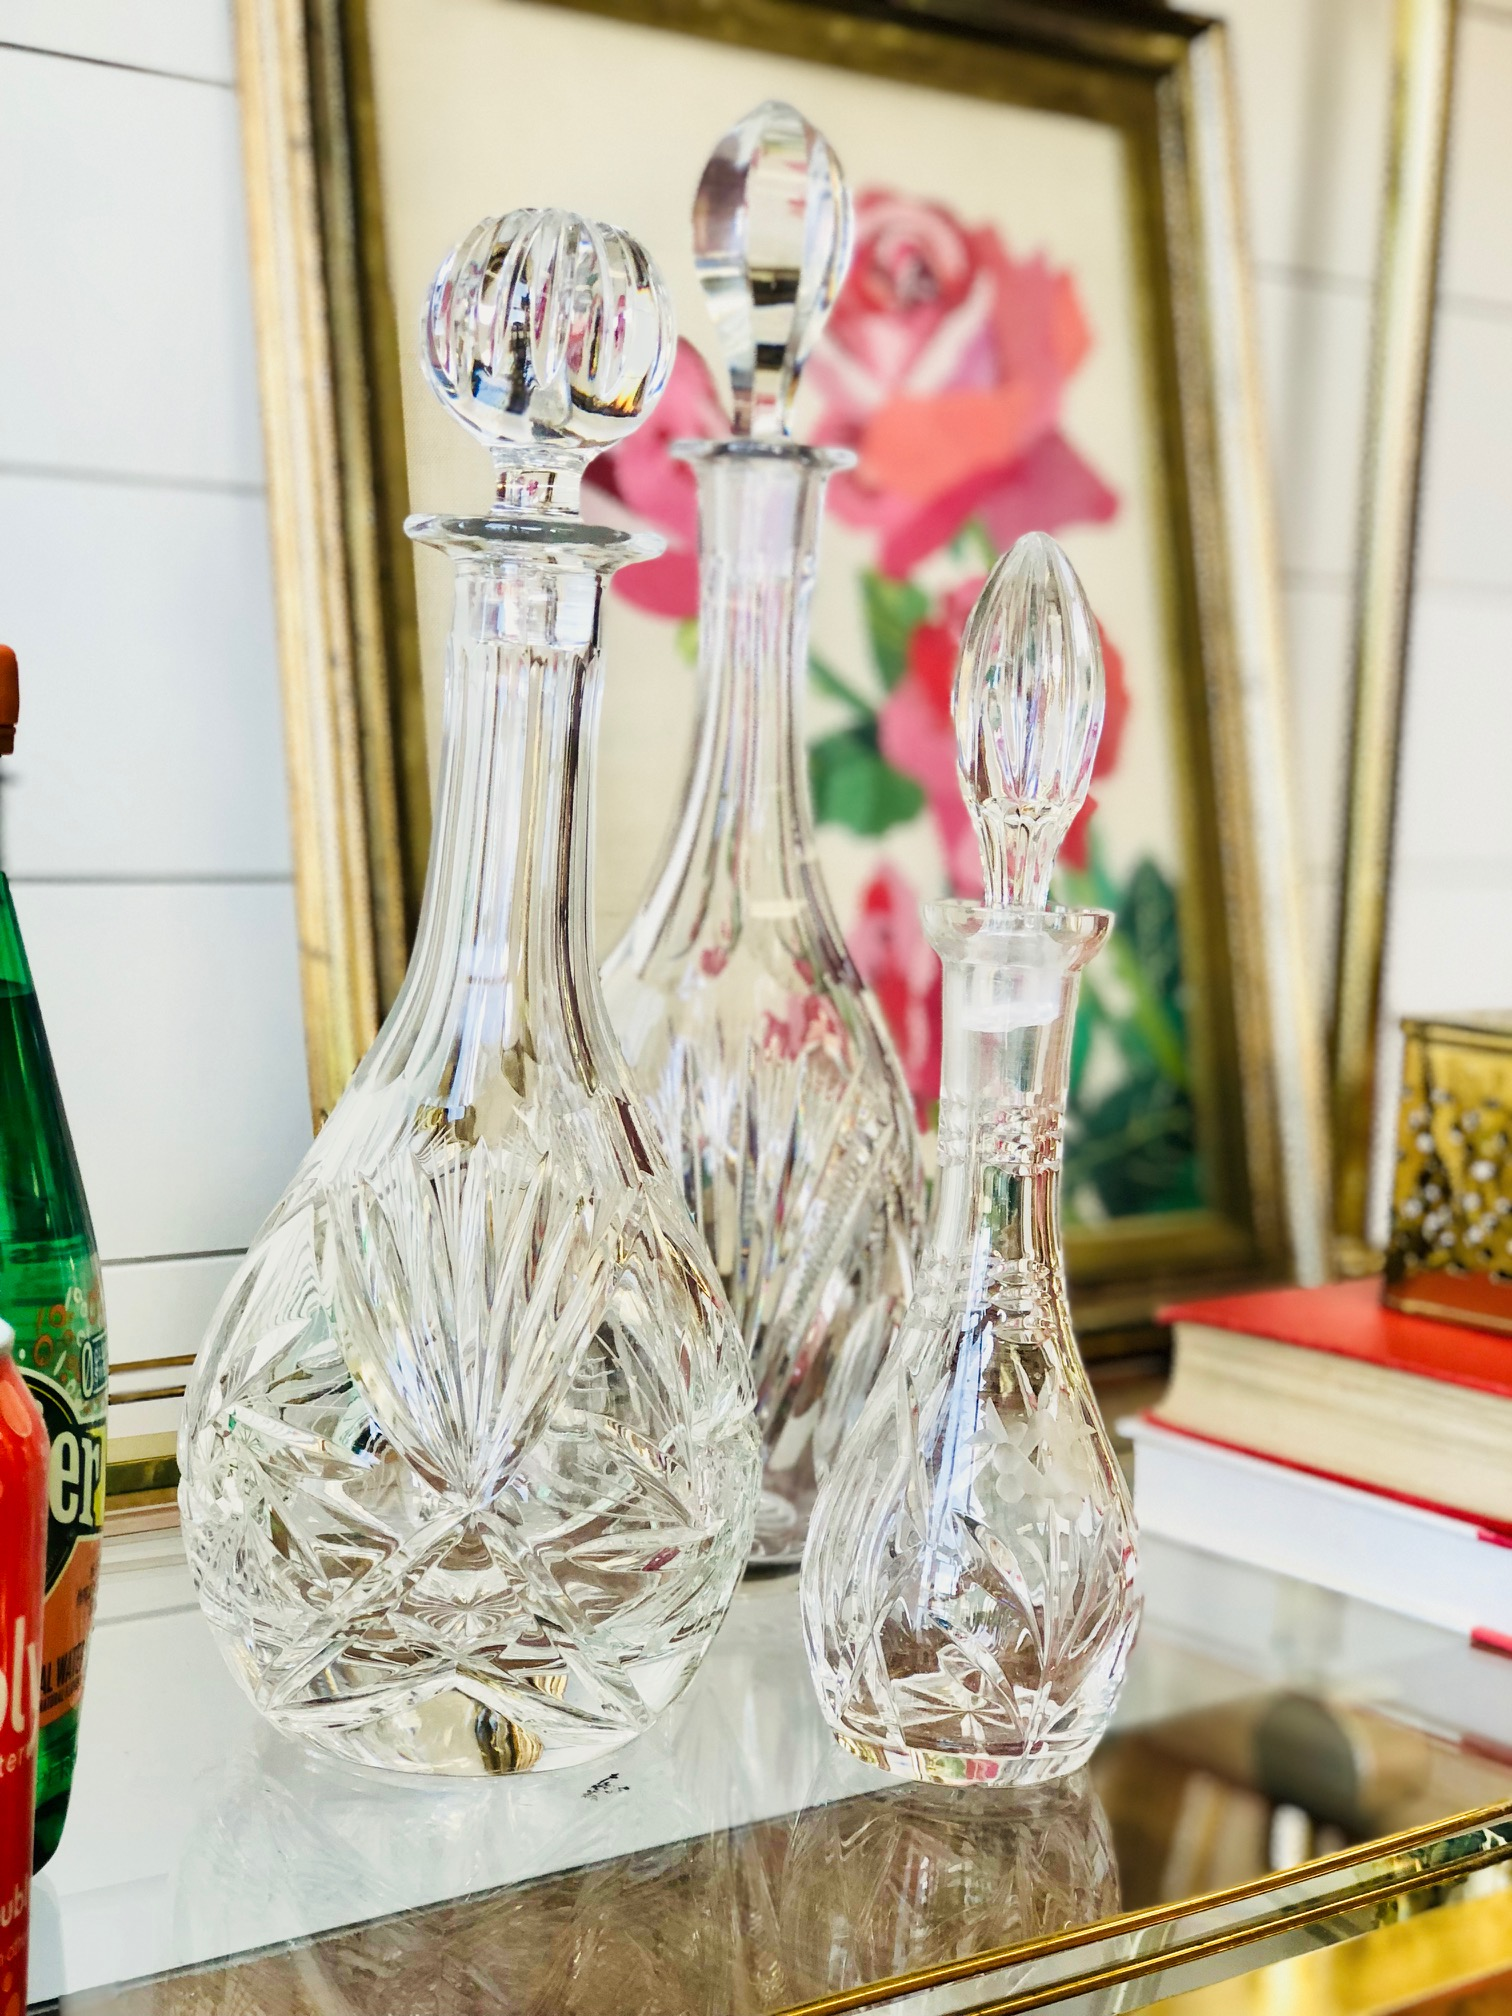 No bar cart is complete without crystal and glass decanters to offer a variety of drinks to guests.